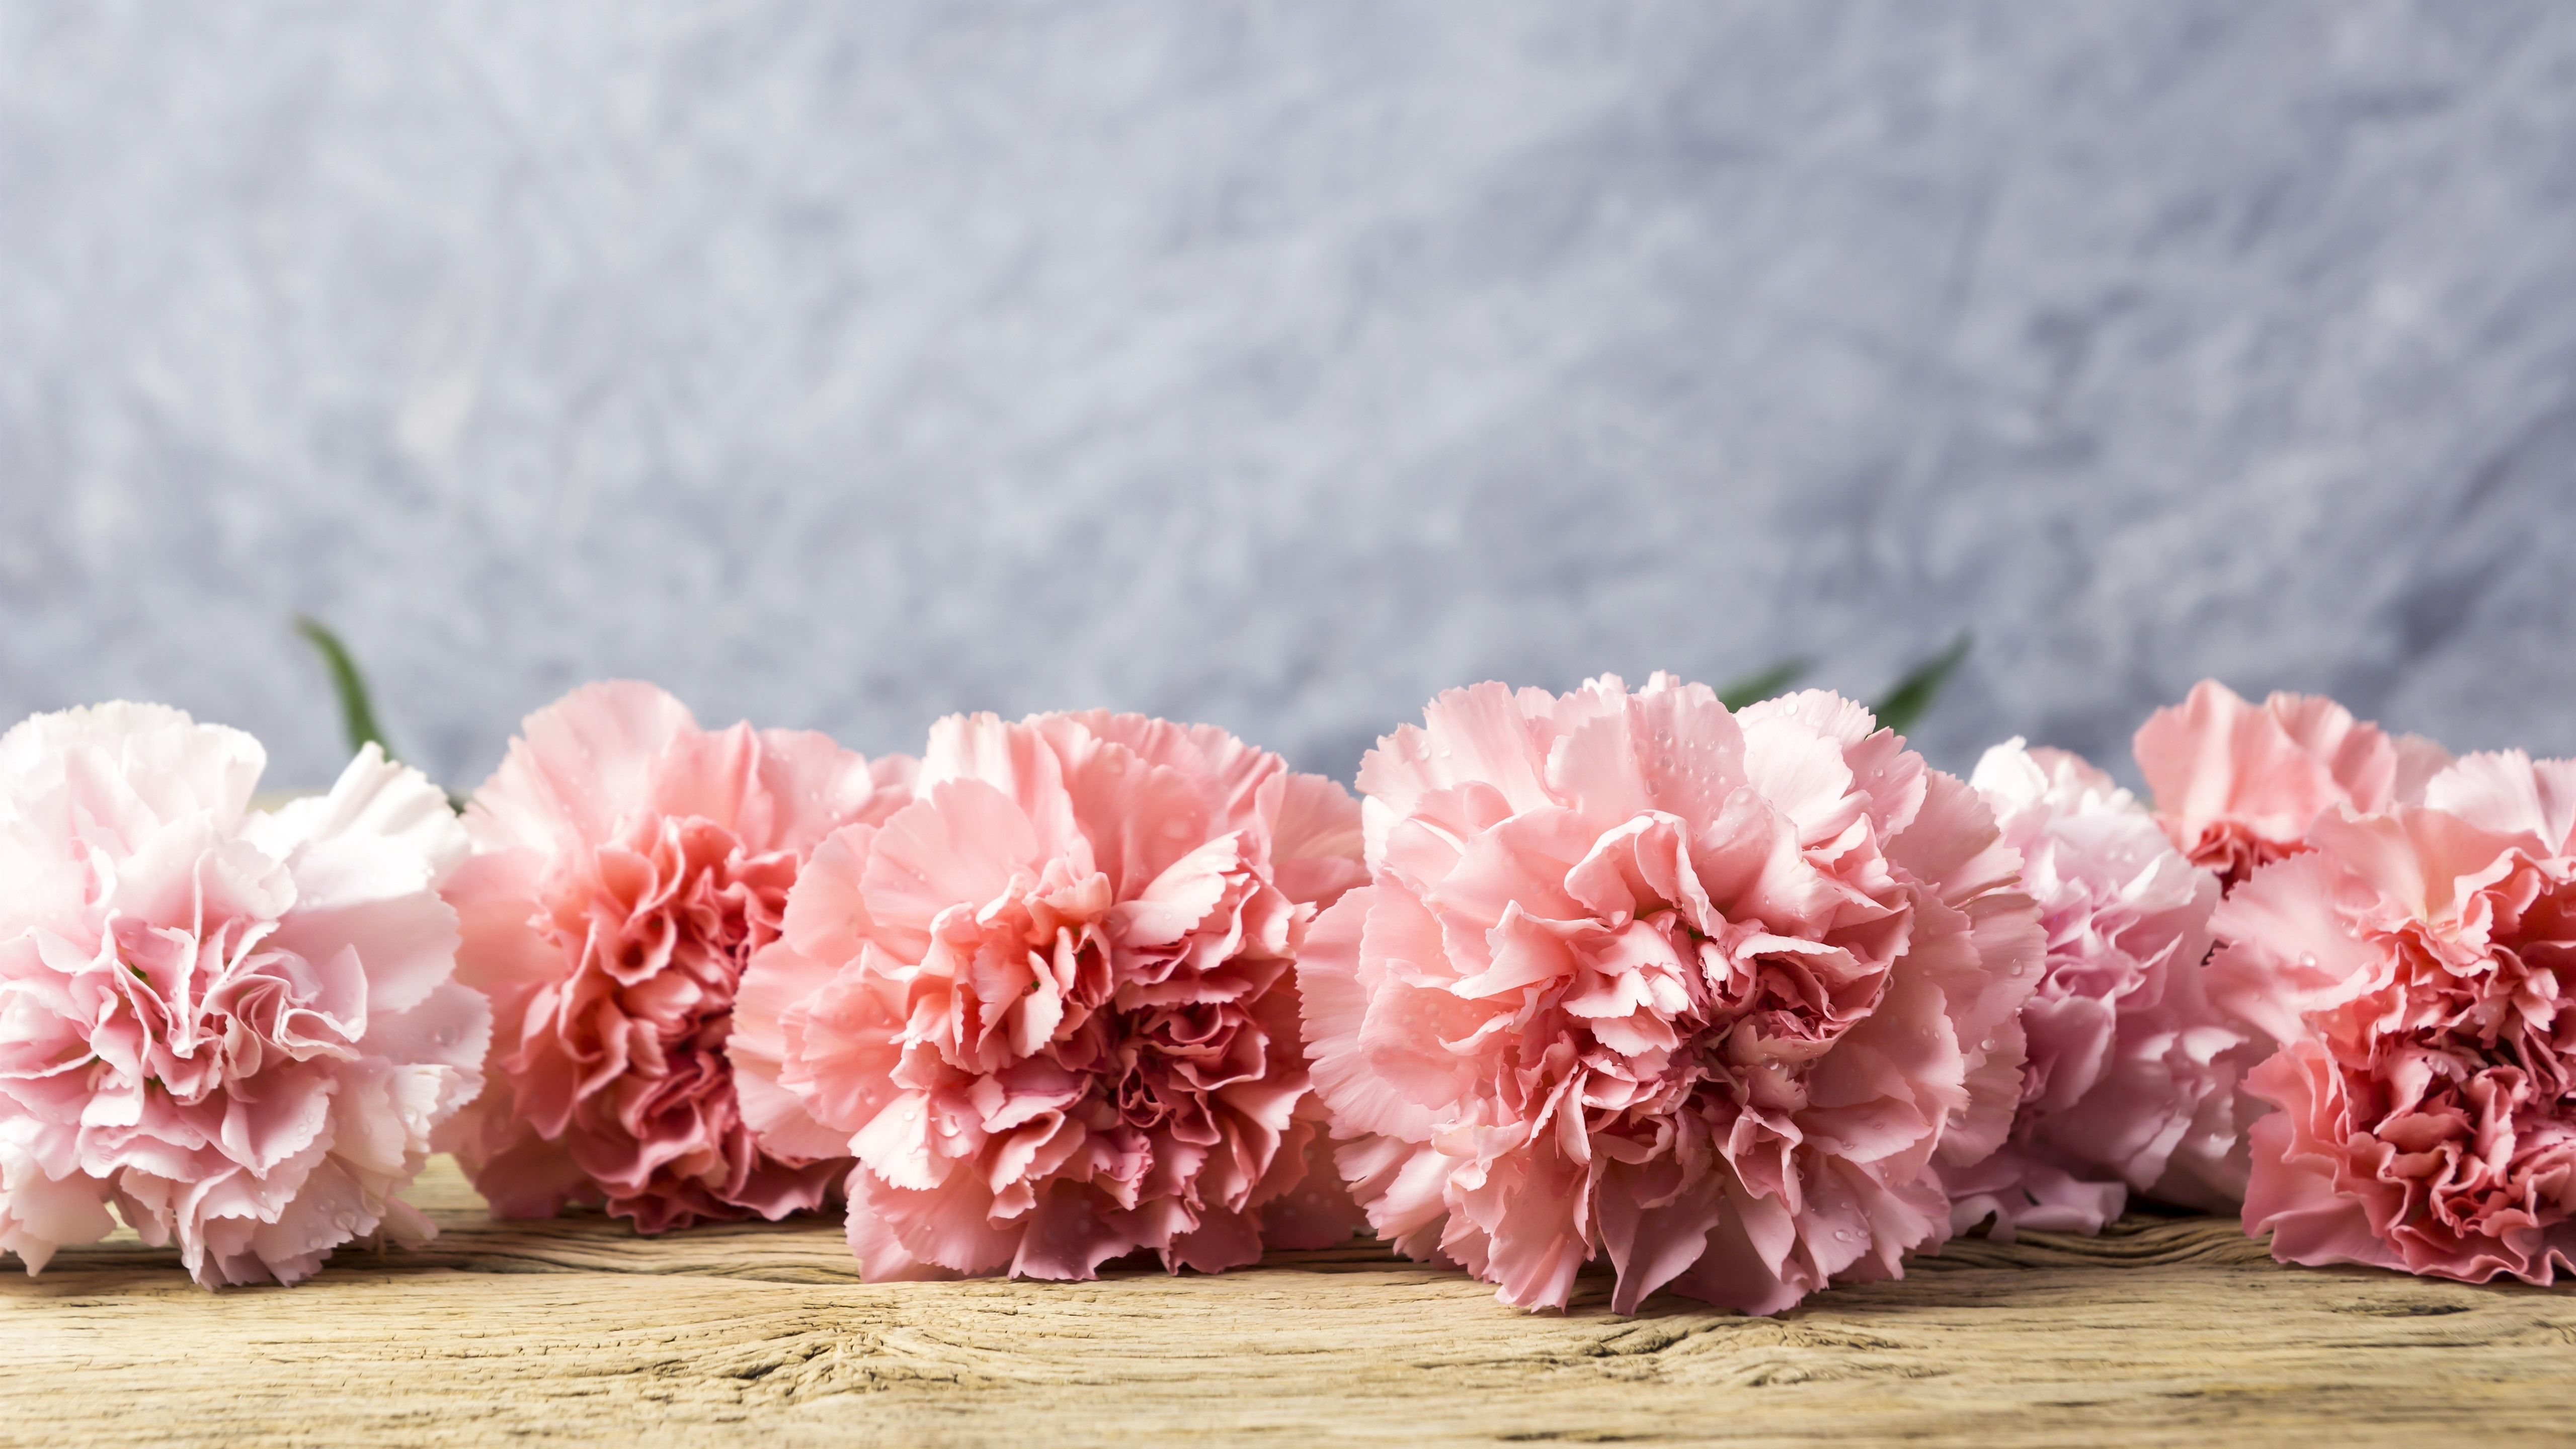 Carnation Wallpapers Top Free Carnation Backgrounds Wallpaperaccess